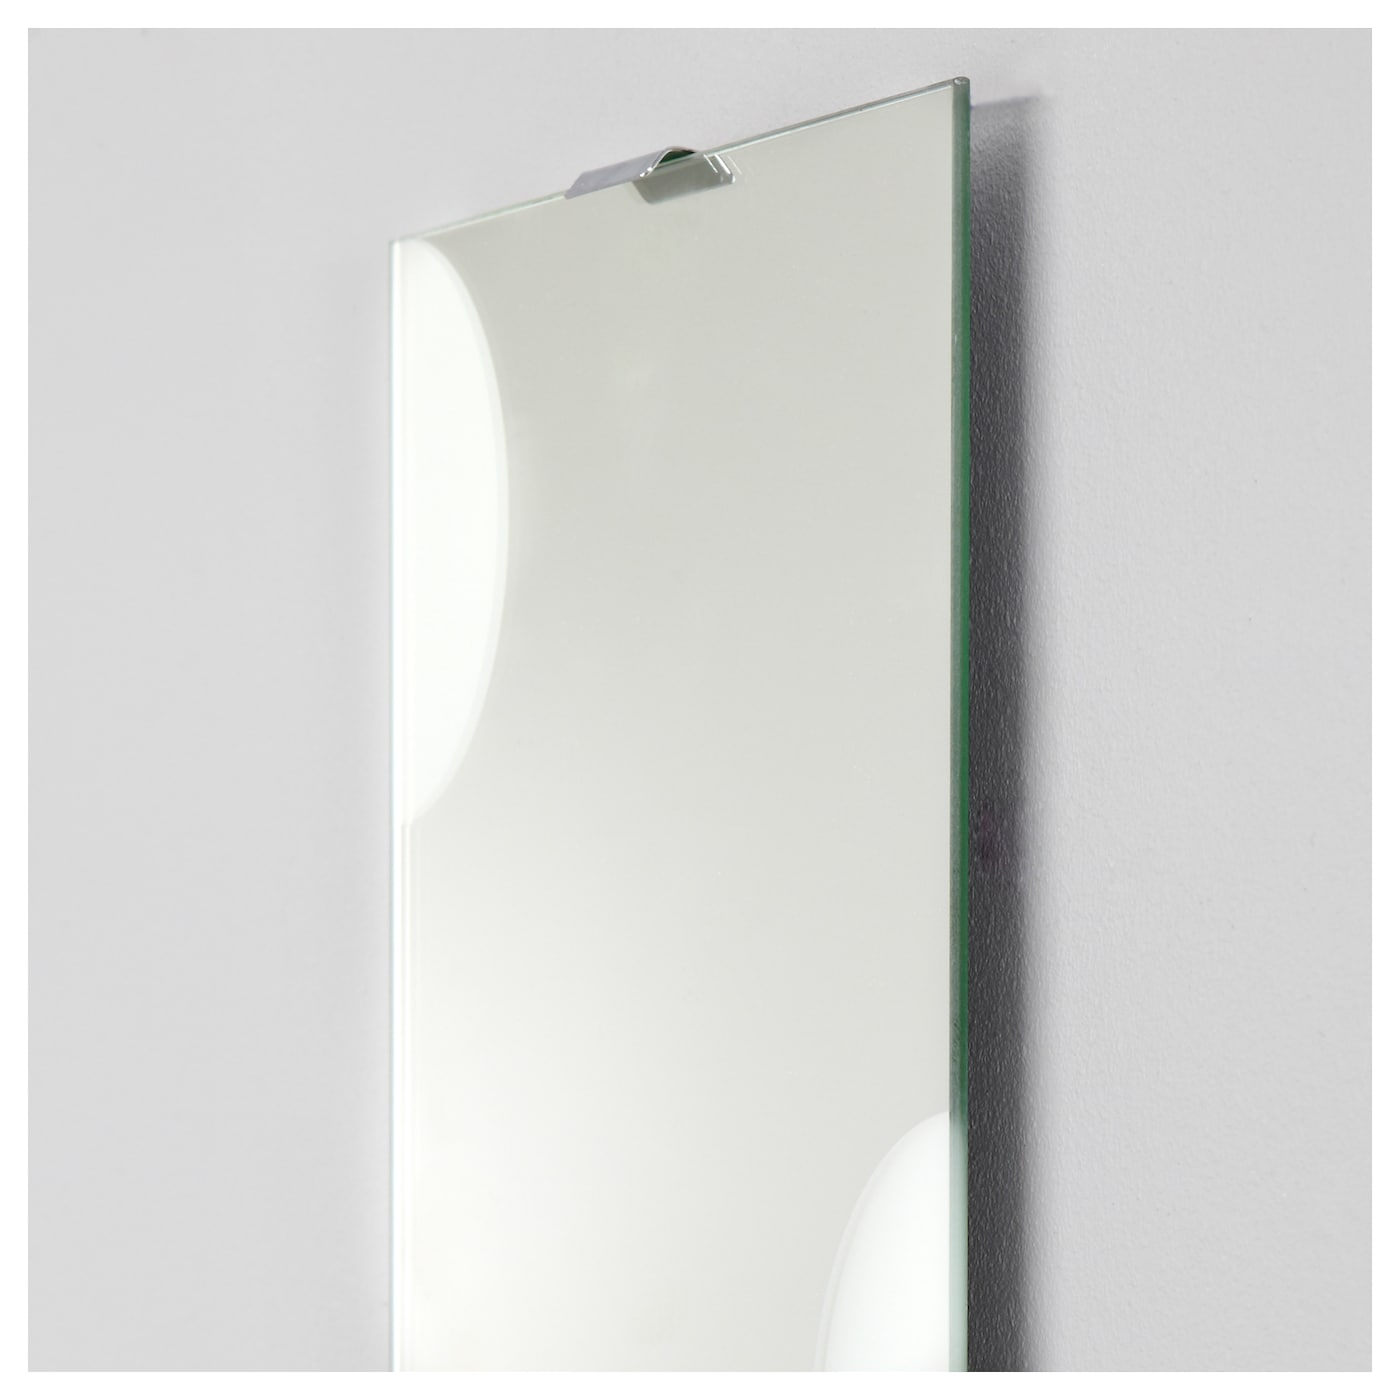 IKEA LUNDAMO mirror Provided with safety film - reduces damage if glass is broken.